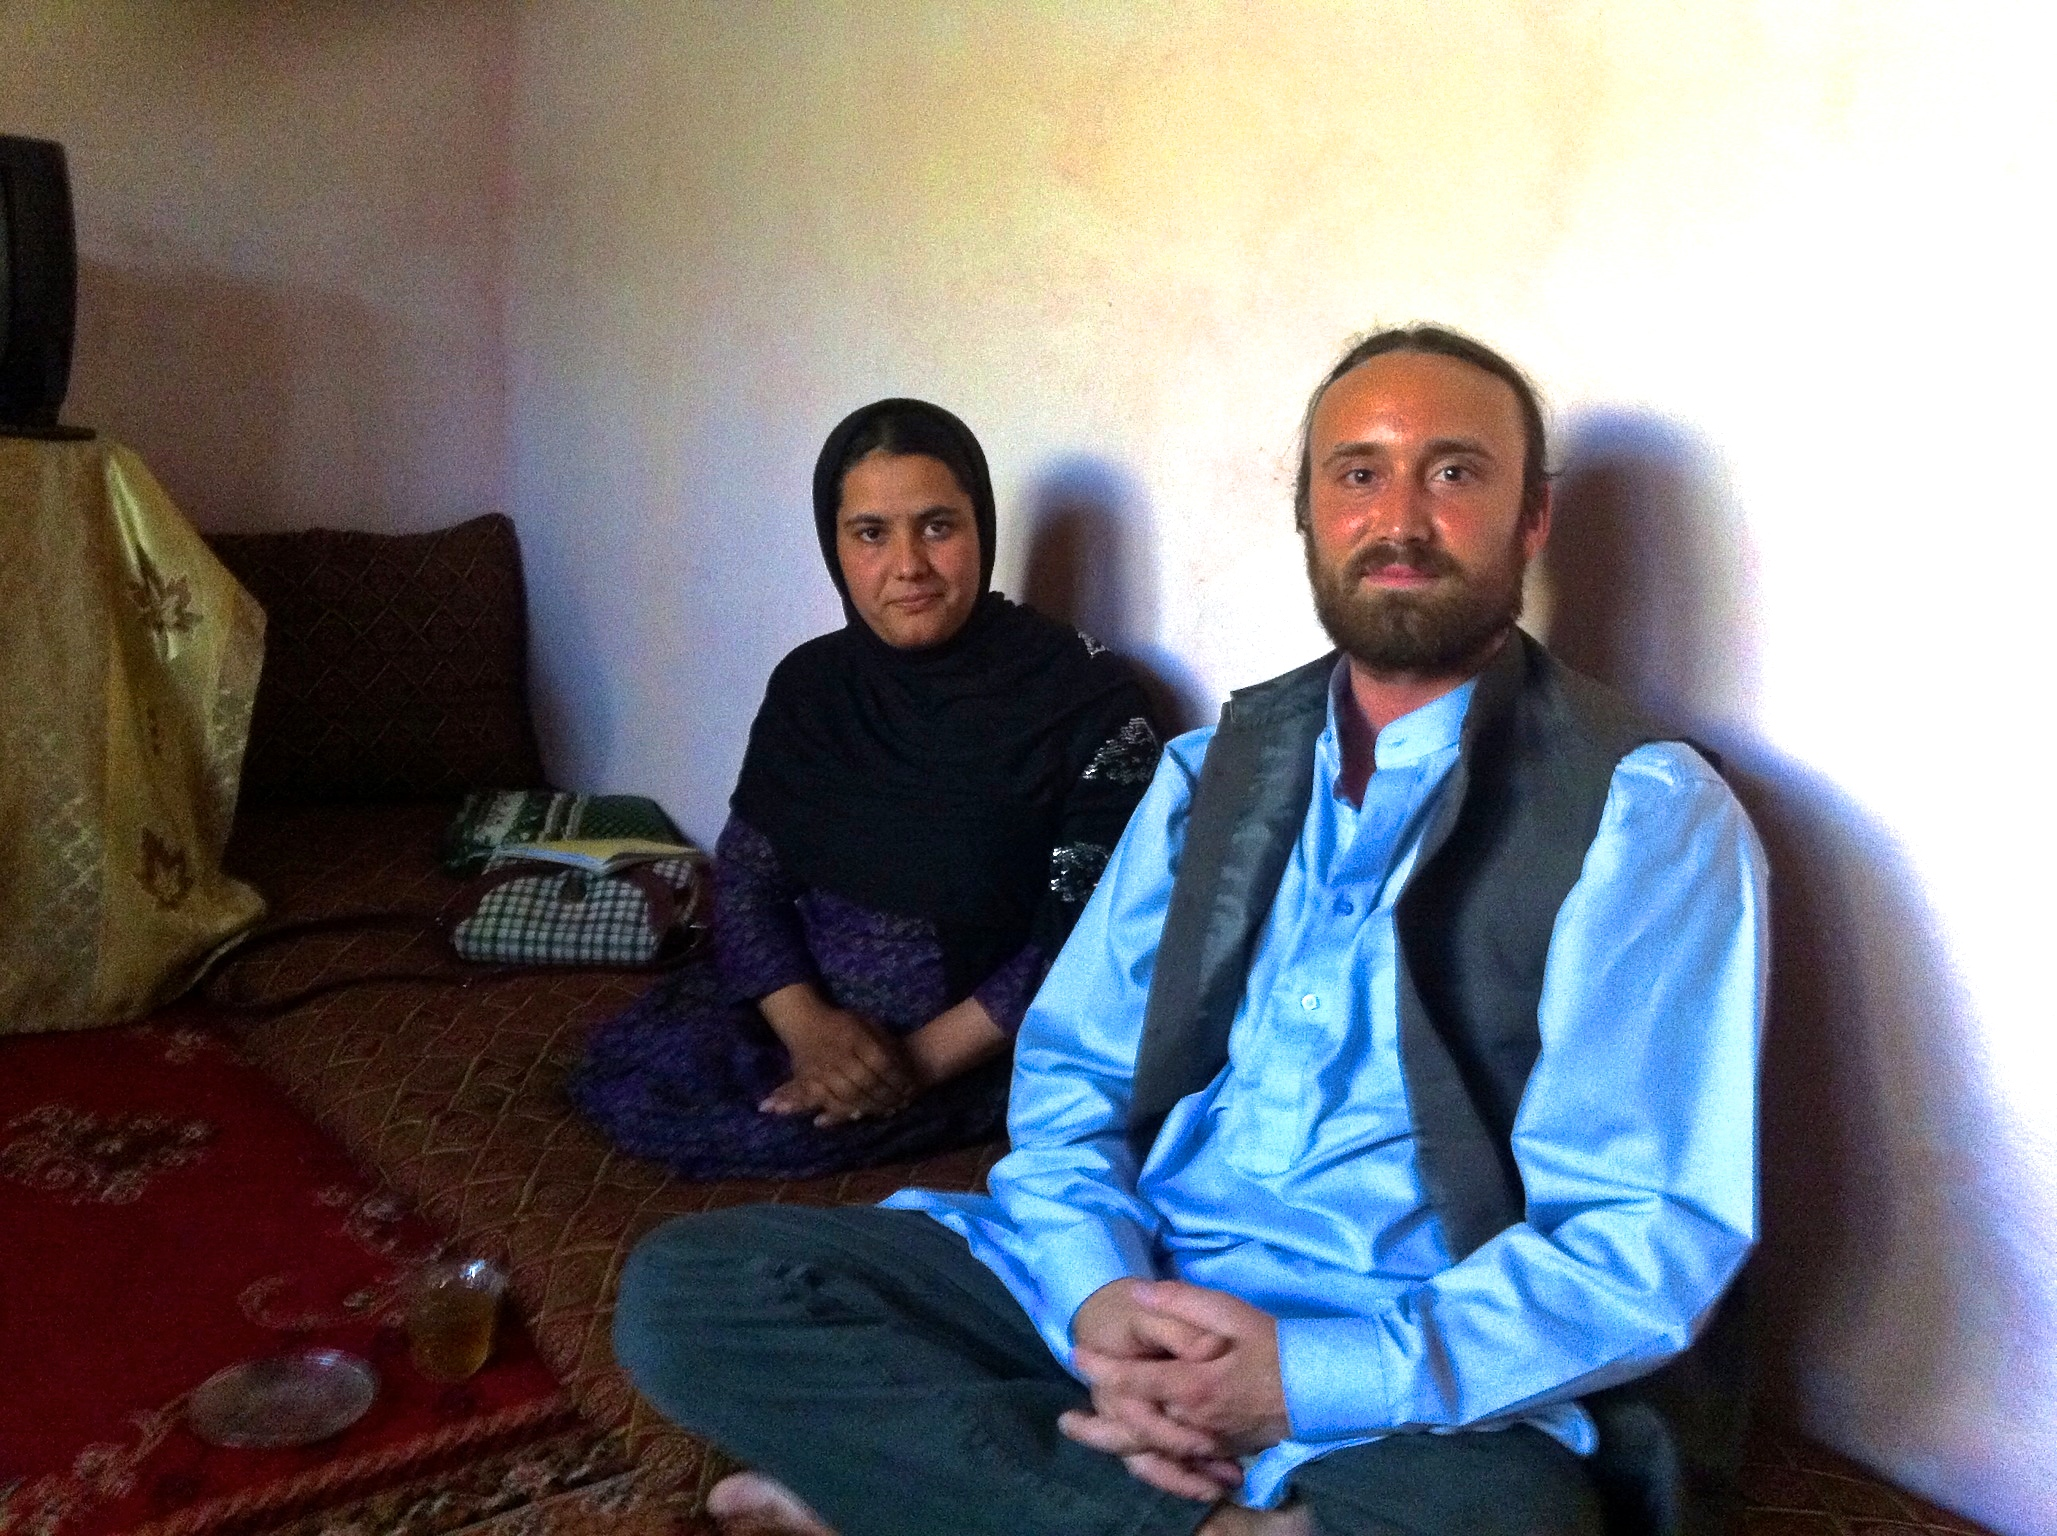 Mahpekay and I having tea in her family's home in central Kabul.